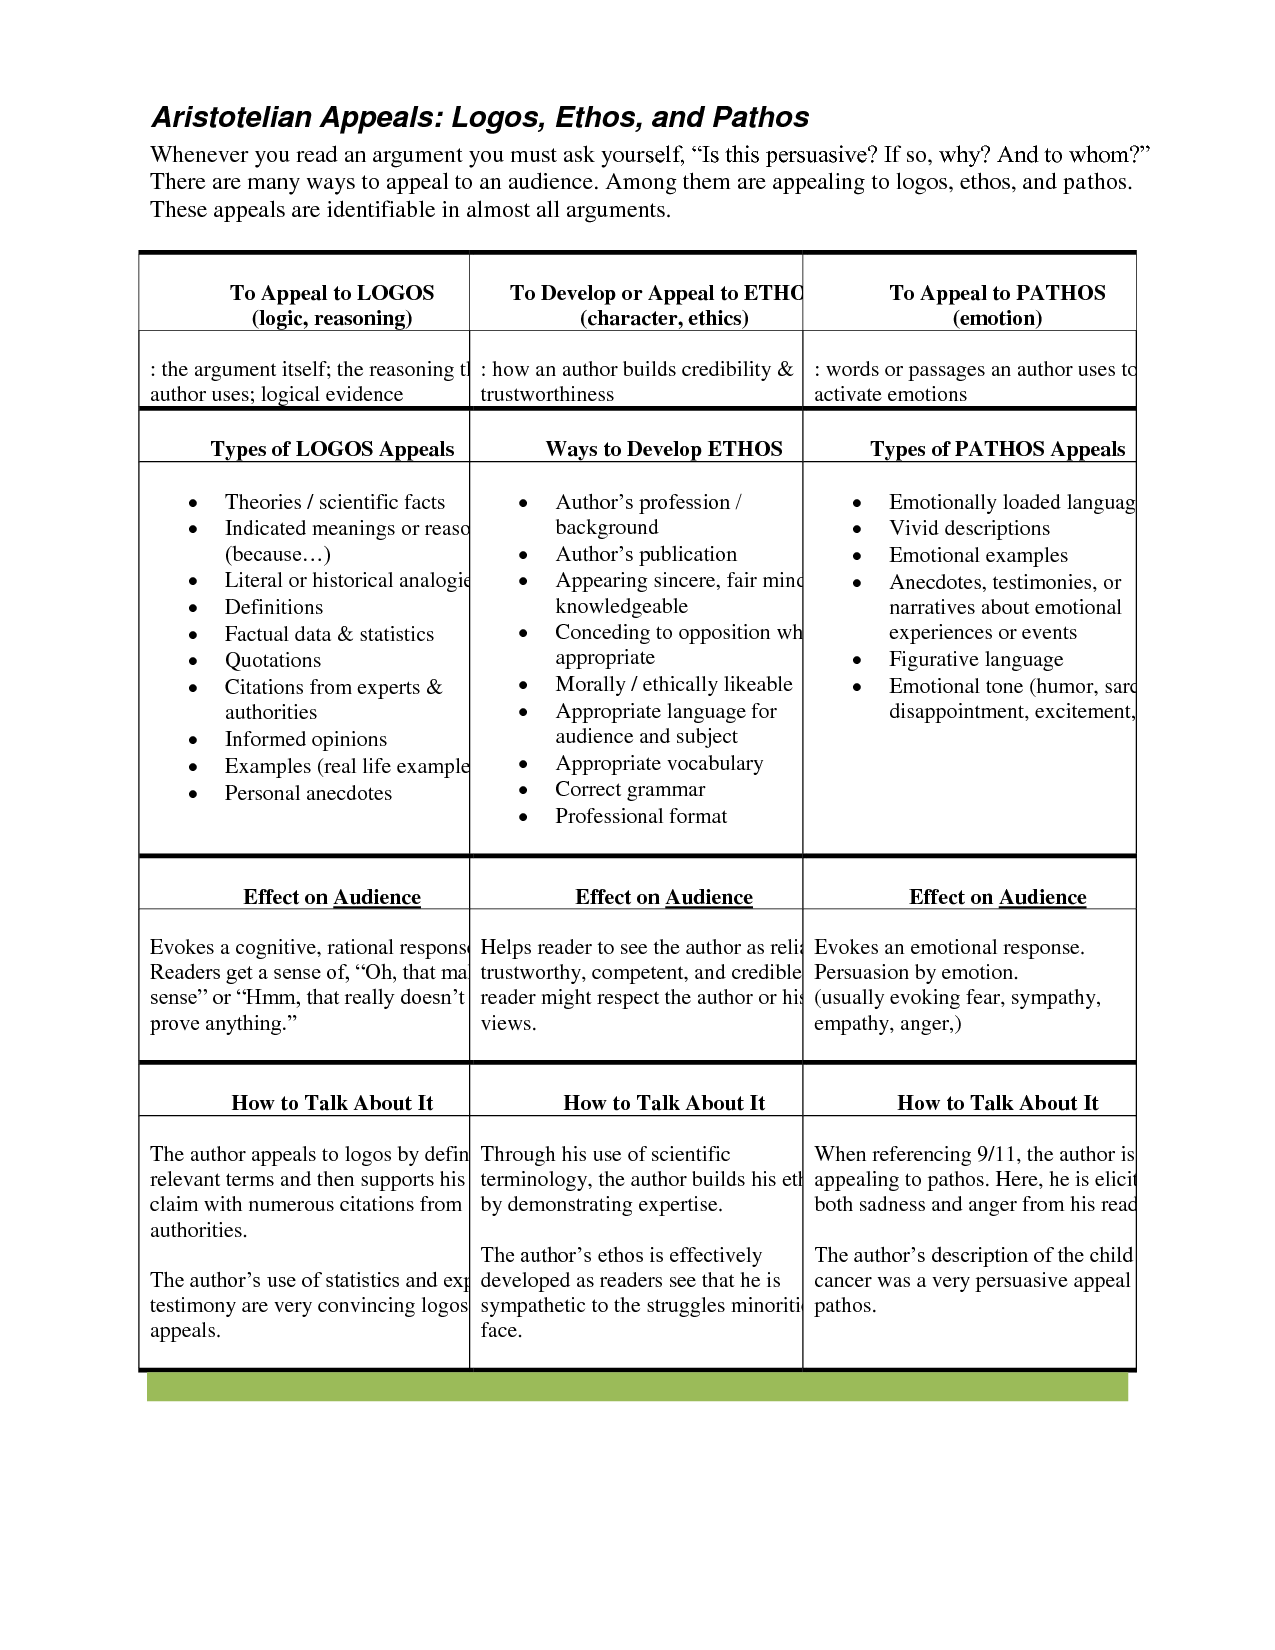 Ethos Pathos Logos Worksheet | Ethos Pathos Logos Lesson ...